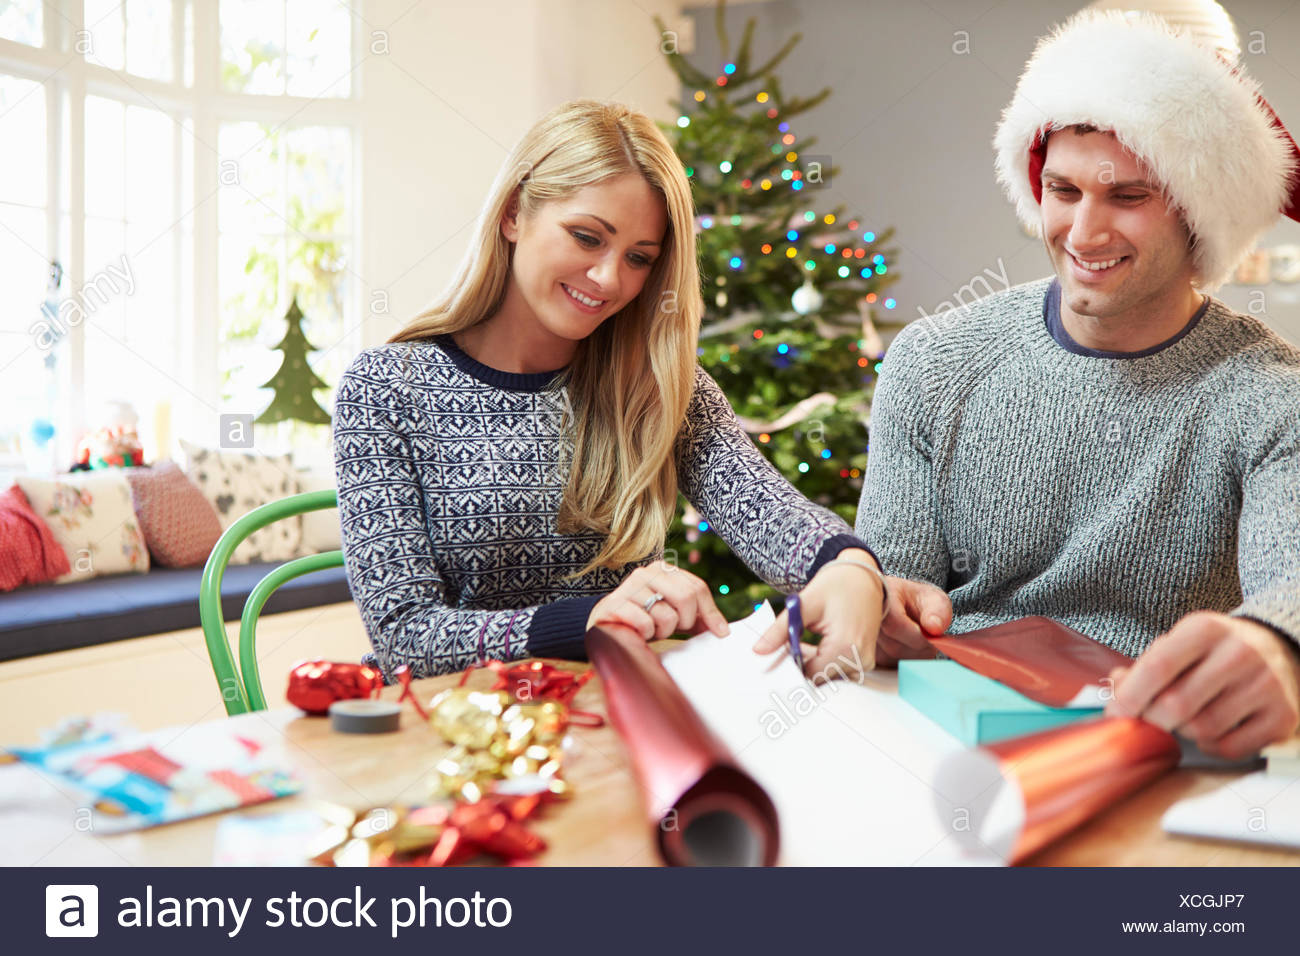 Couple Wrapping Christmas Gifts At Home Stock Photo: 283107727 - Alamy